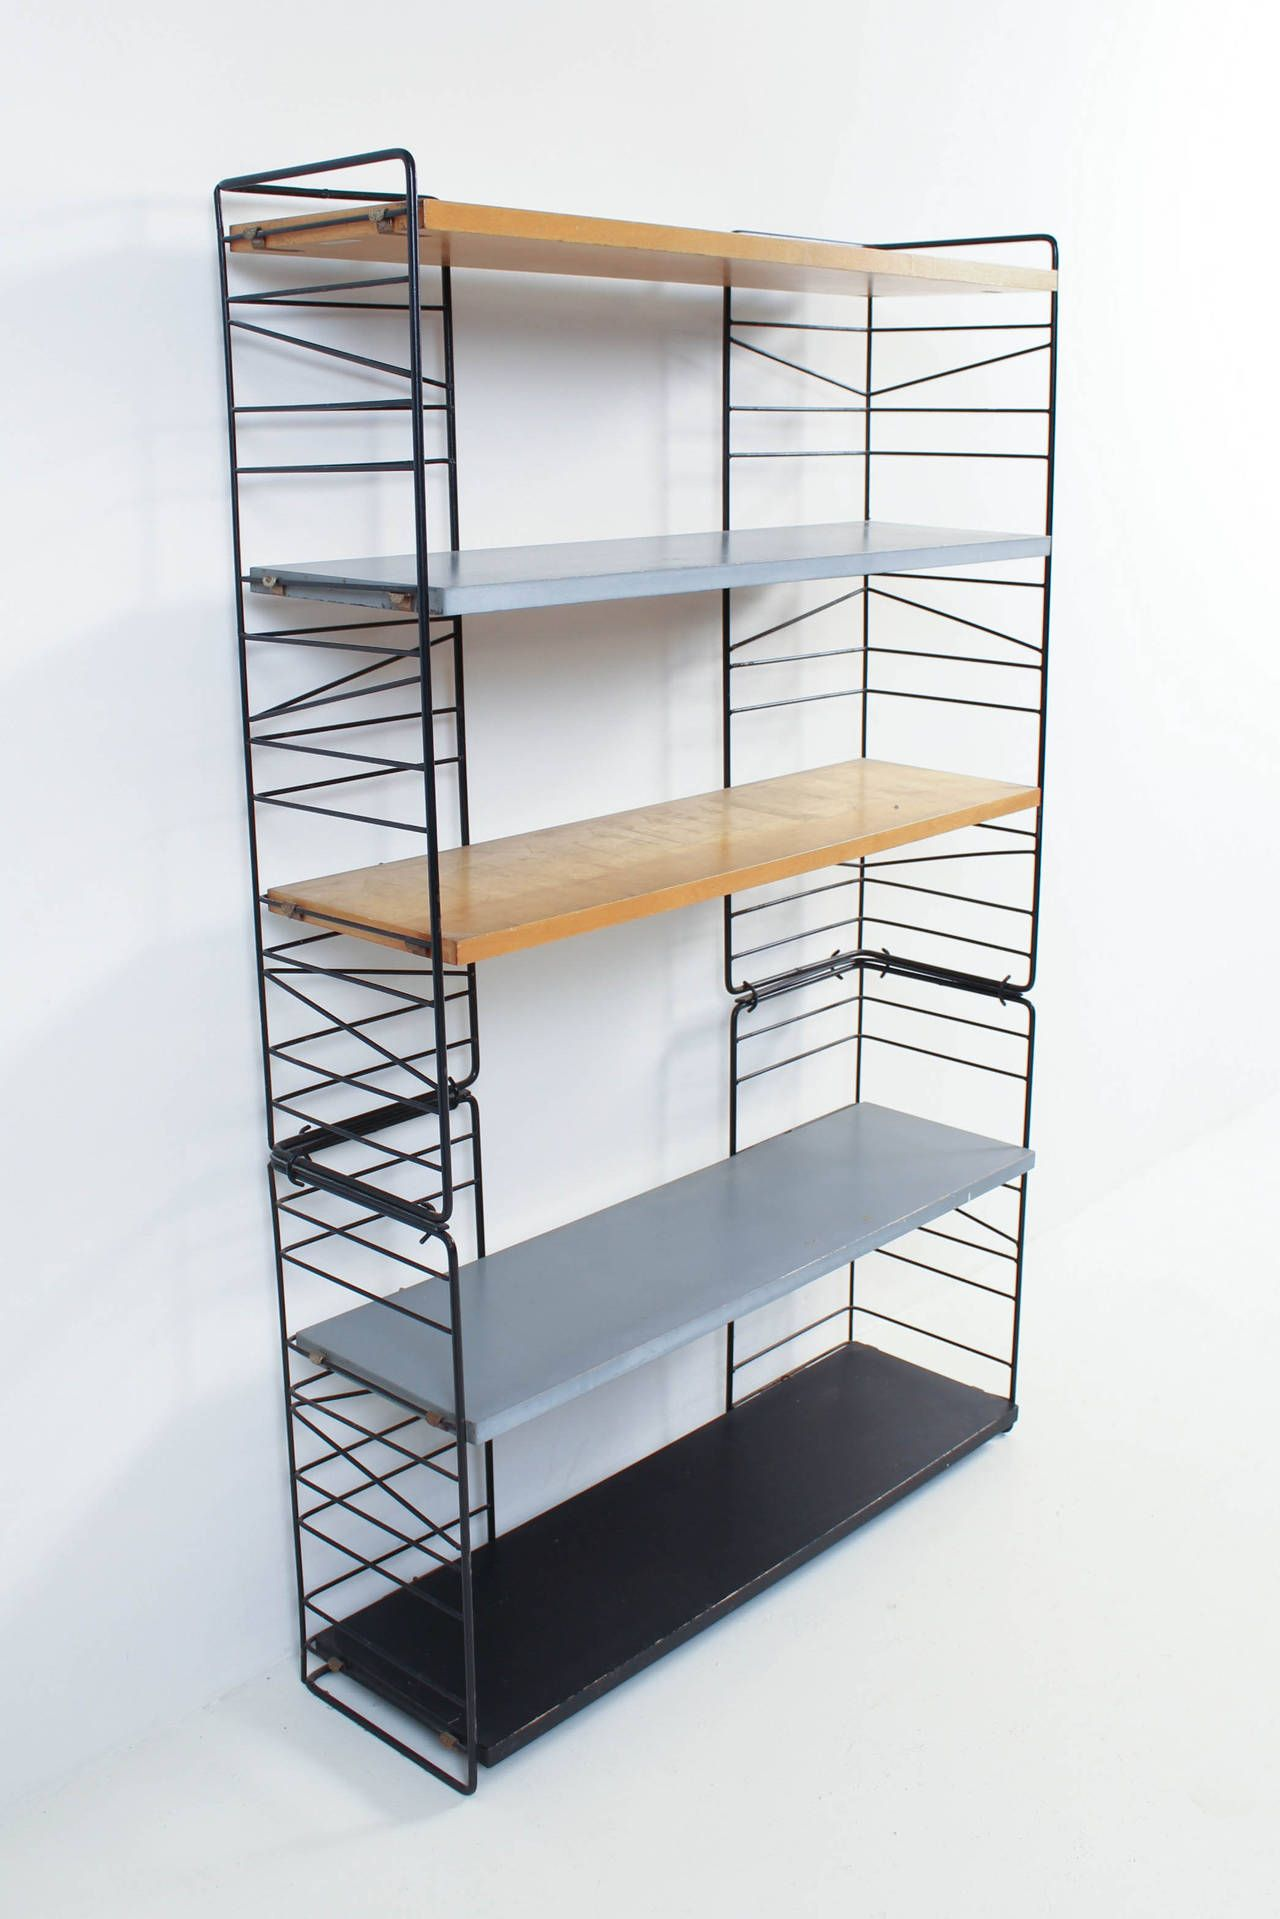 Accessories U0026 Furniture,Stunning Freestanding Modular Shelving Units With  Brown Wooden Cube Shelf And White Metal Shelf Holder,Best Collection Moduu2026